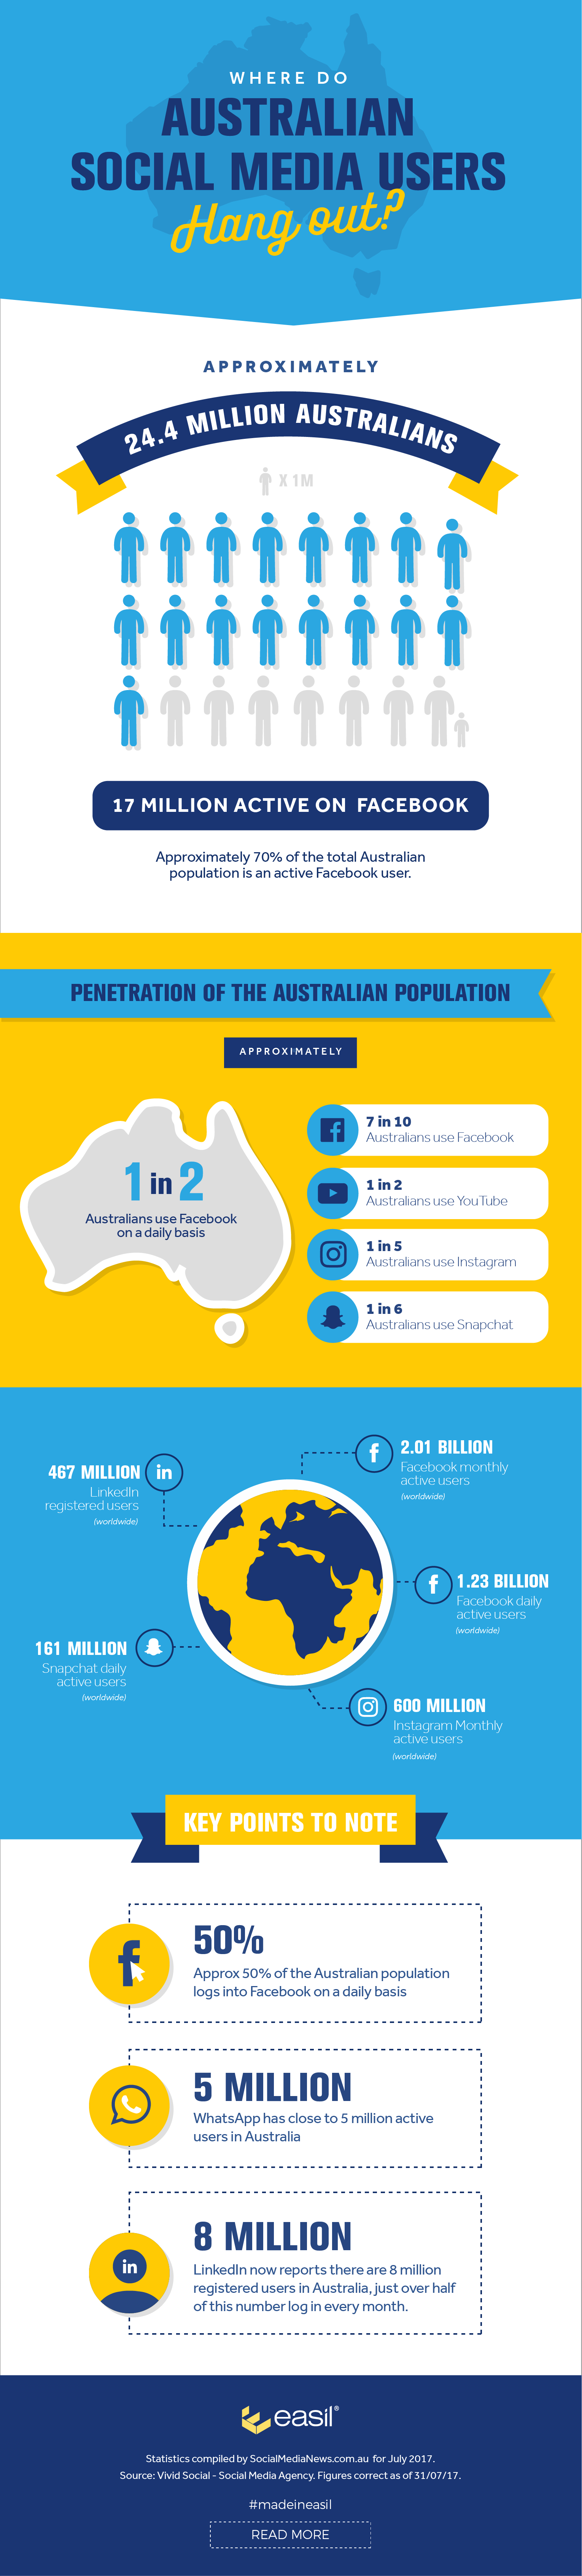 Australian Social media users - stats about where they hang out infographic